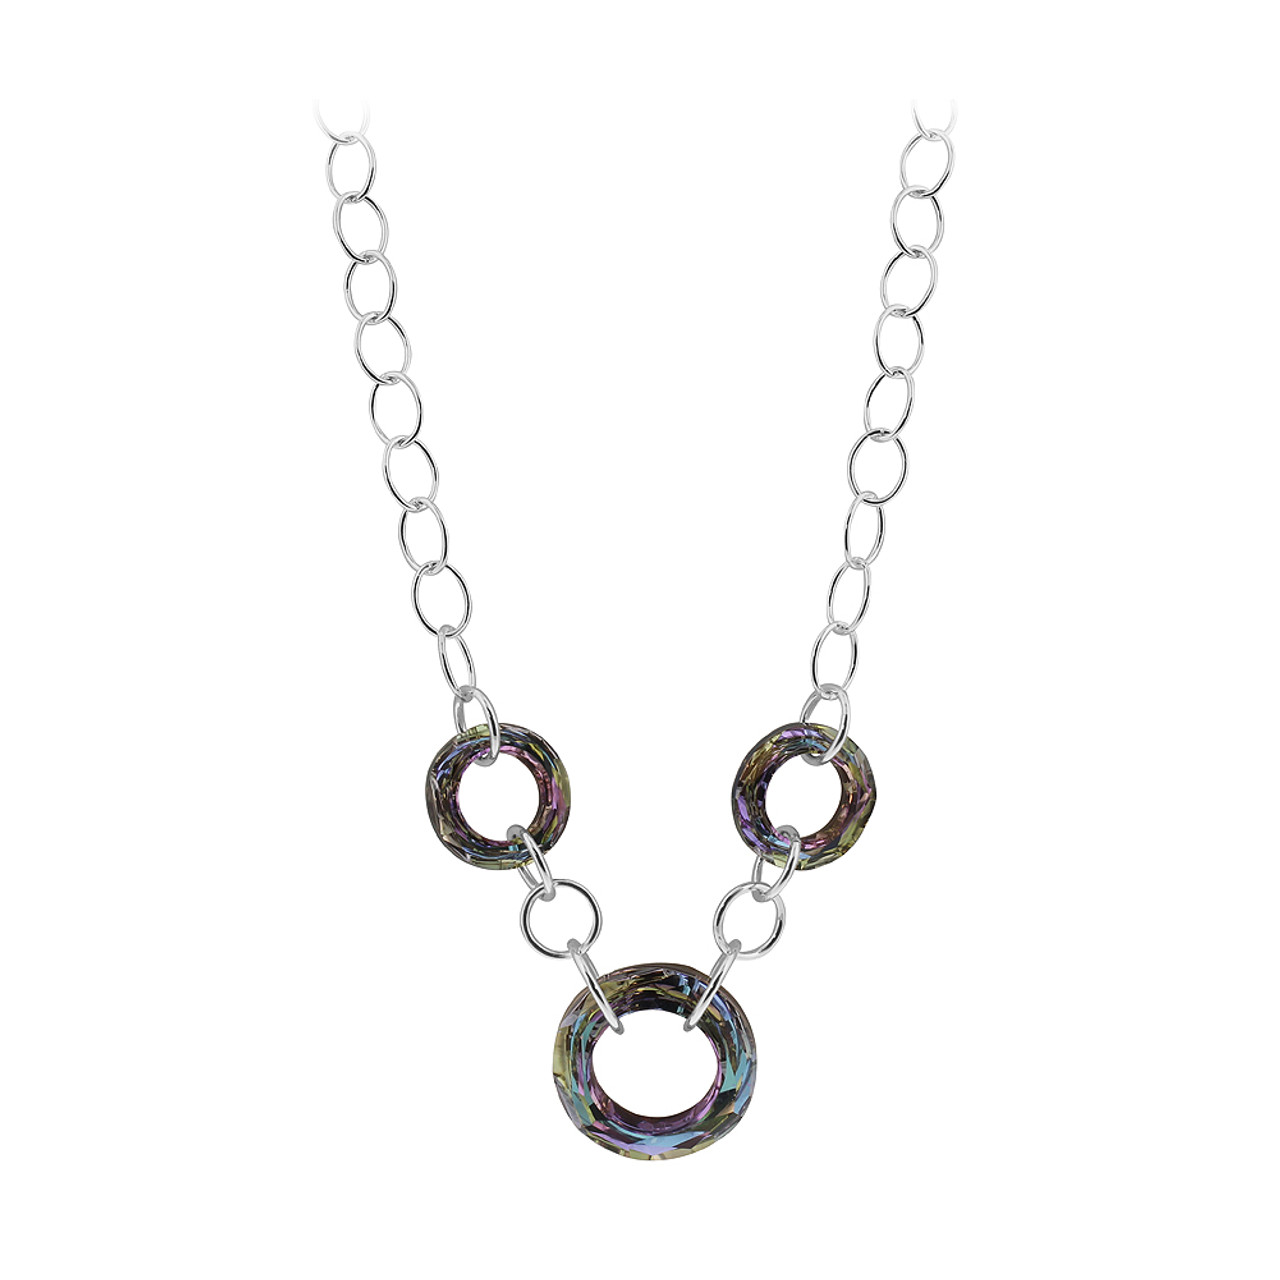 5450db2dc542 Sterling Silver Light Vitrail Faceted Round Crystal Necklace 16 ...